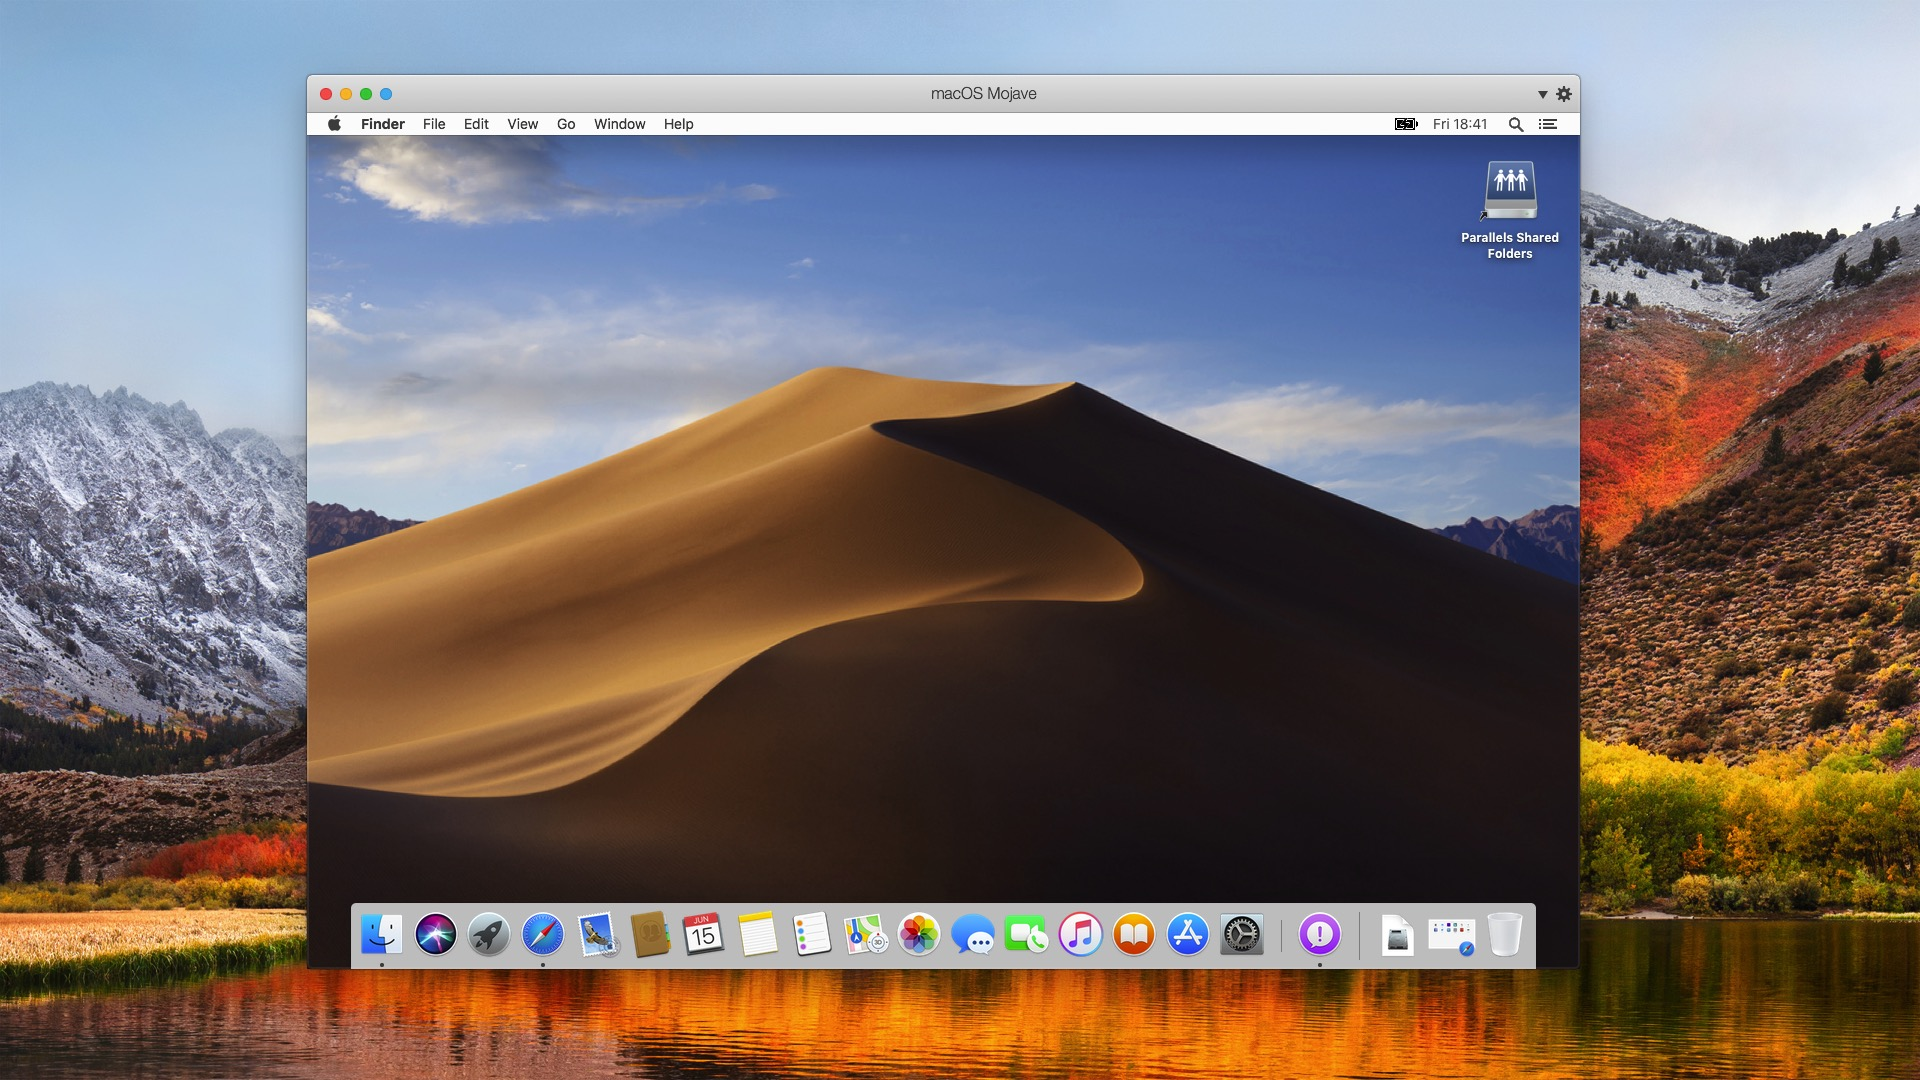 Running macOS Mojave in a virtual machine